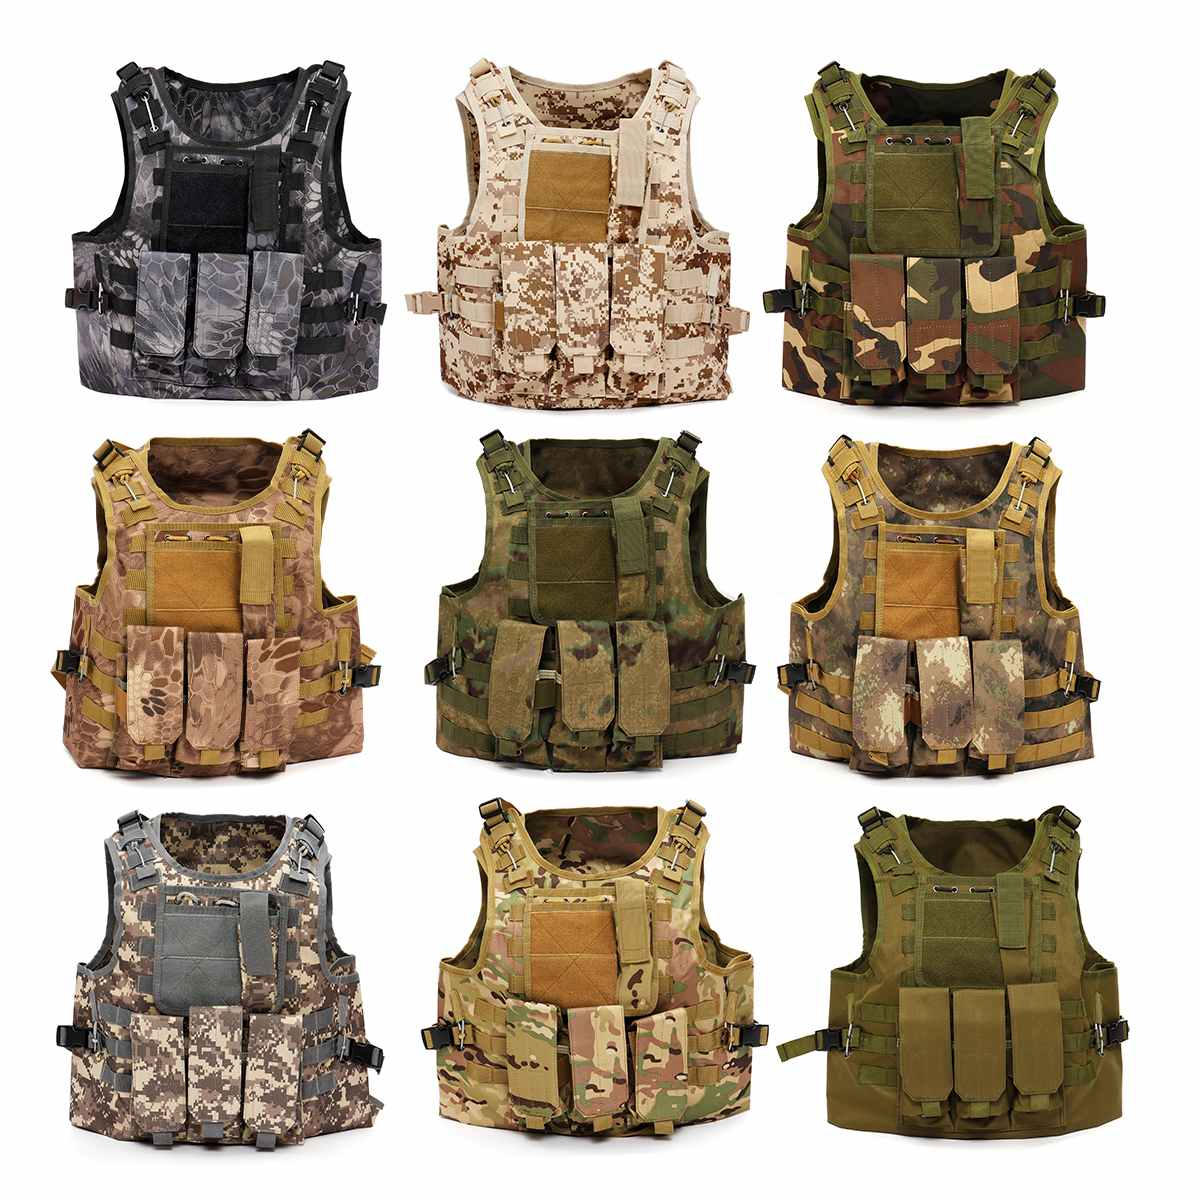 Adjustable Tactical Military Vest Army Paintball Airsoft Combat Assault Army Training Combat Uniform Hunting Camouflage Vest